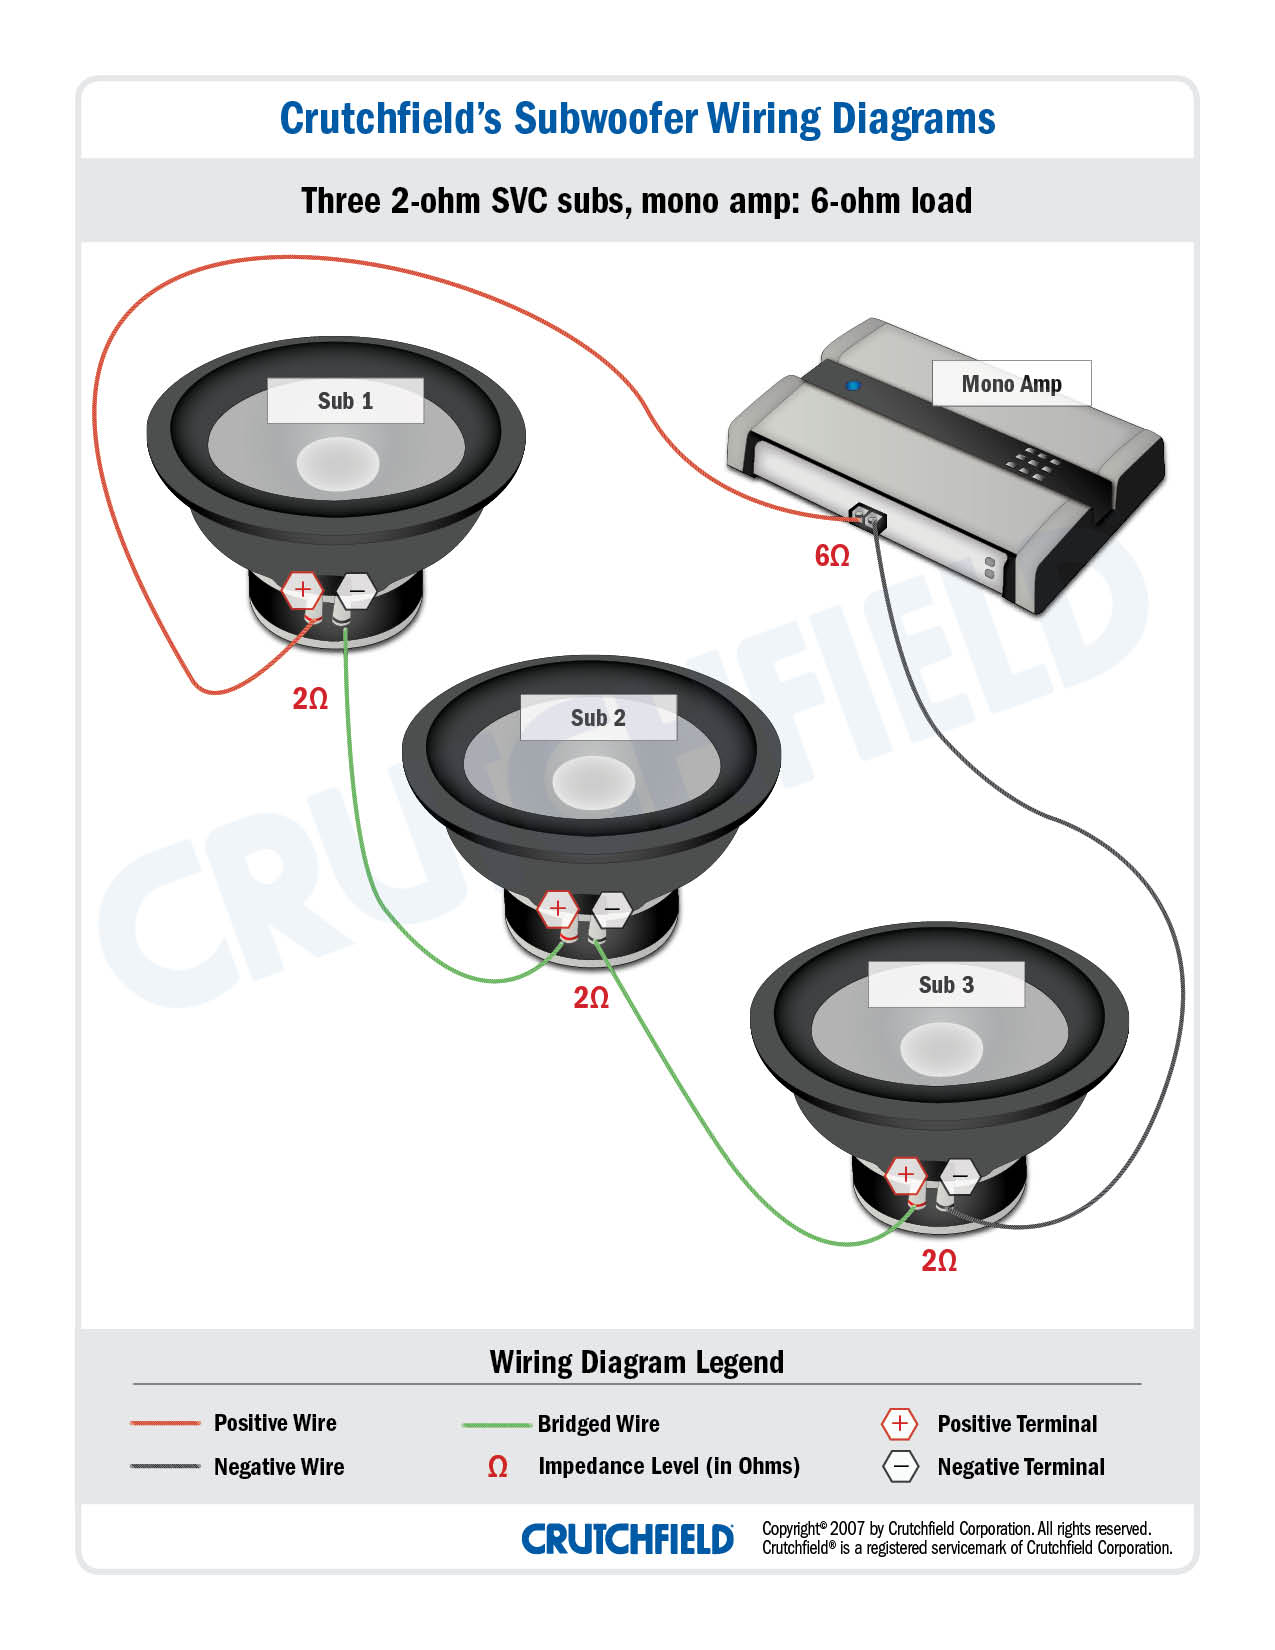 Subwoofer Wiring Diagrams mdash How to Wire Your Subs